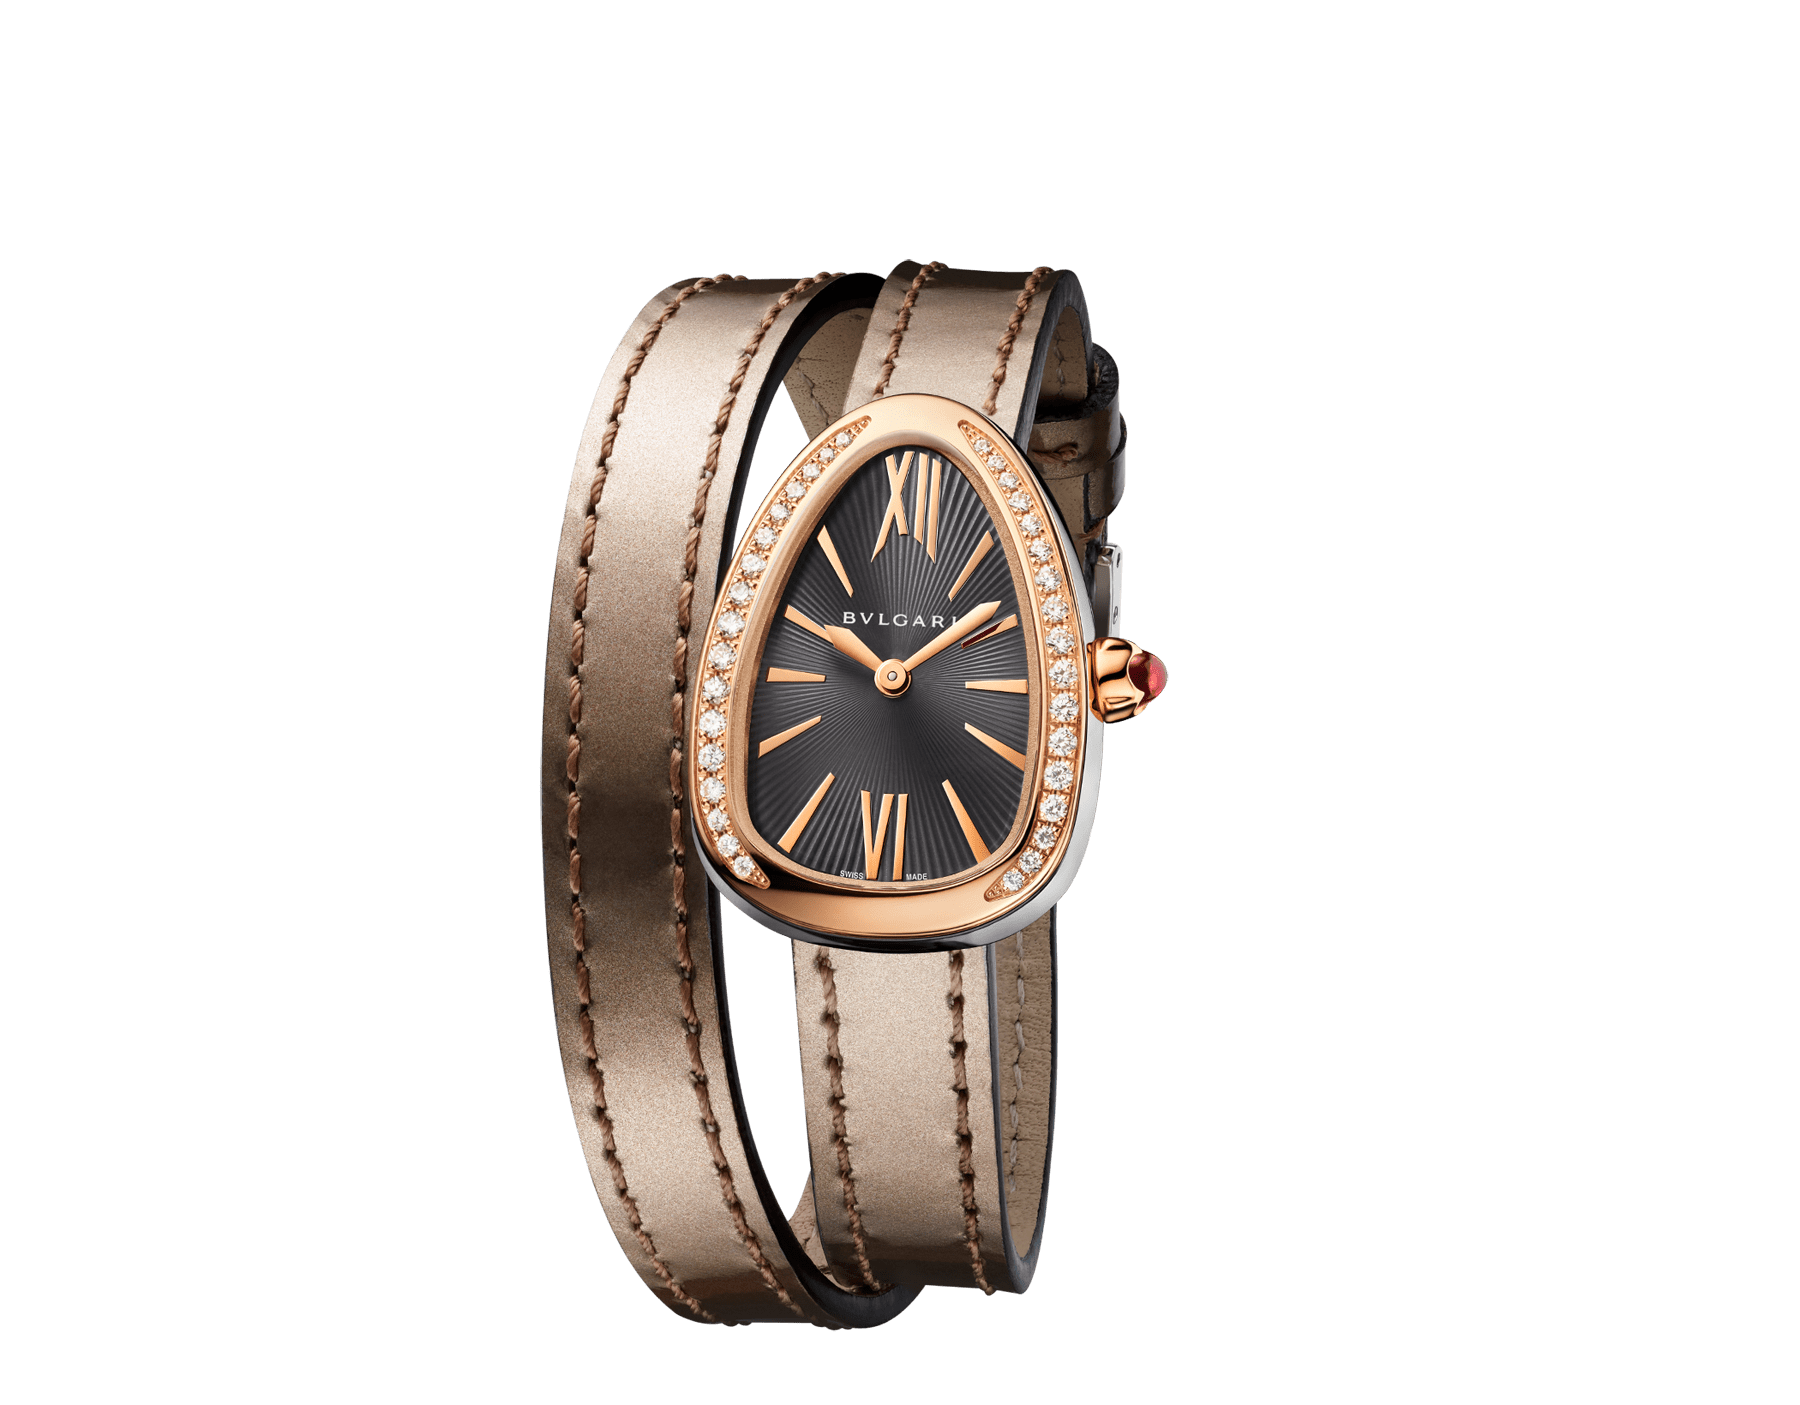 Serpenti watch with stainless steel case, 18 kt rose gold bezel set with diamonds, grey lacquered dial and interchangeable double spiral bracelet in antique bronze brushed metallic calf leather. 102968 image 2